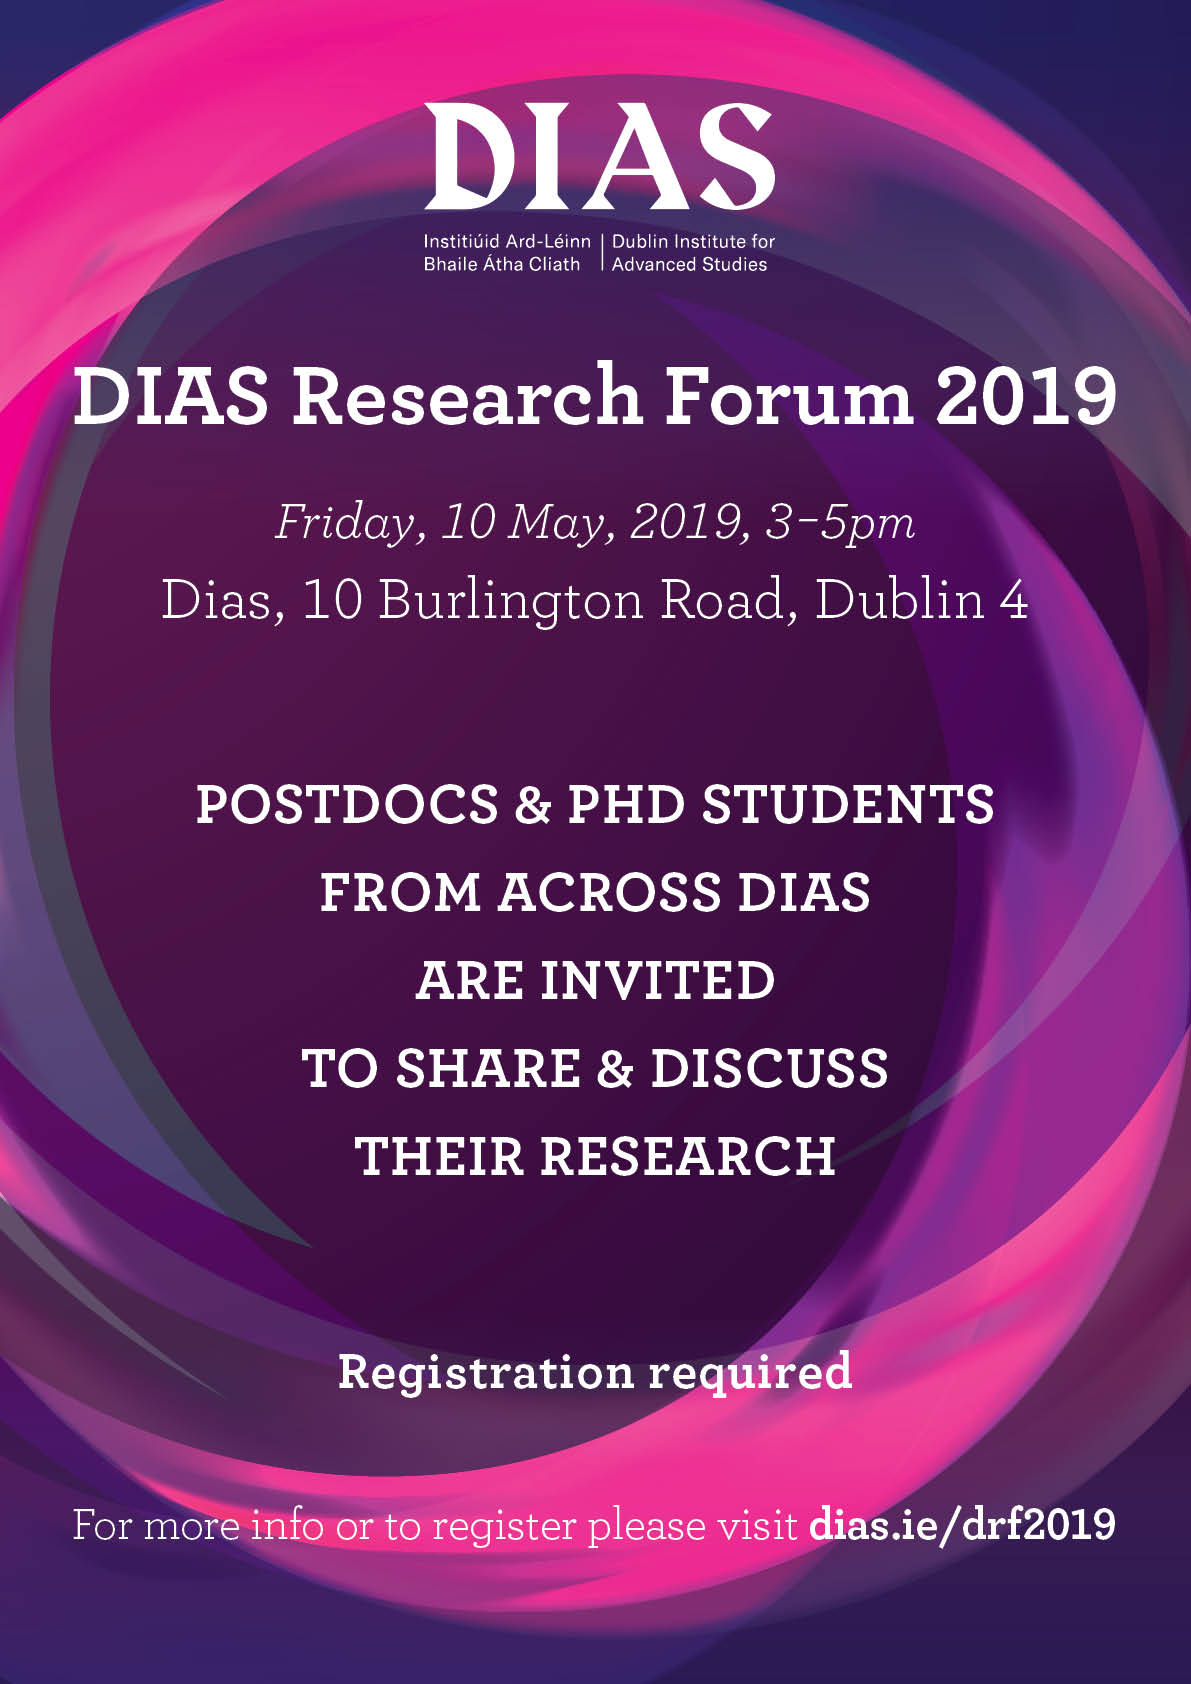 https://www.dias.ie/wp-content/uploads/2019/03/DIAS-Research-Forum-Poster-2019.jpg